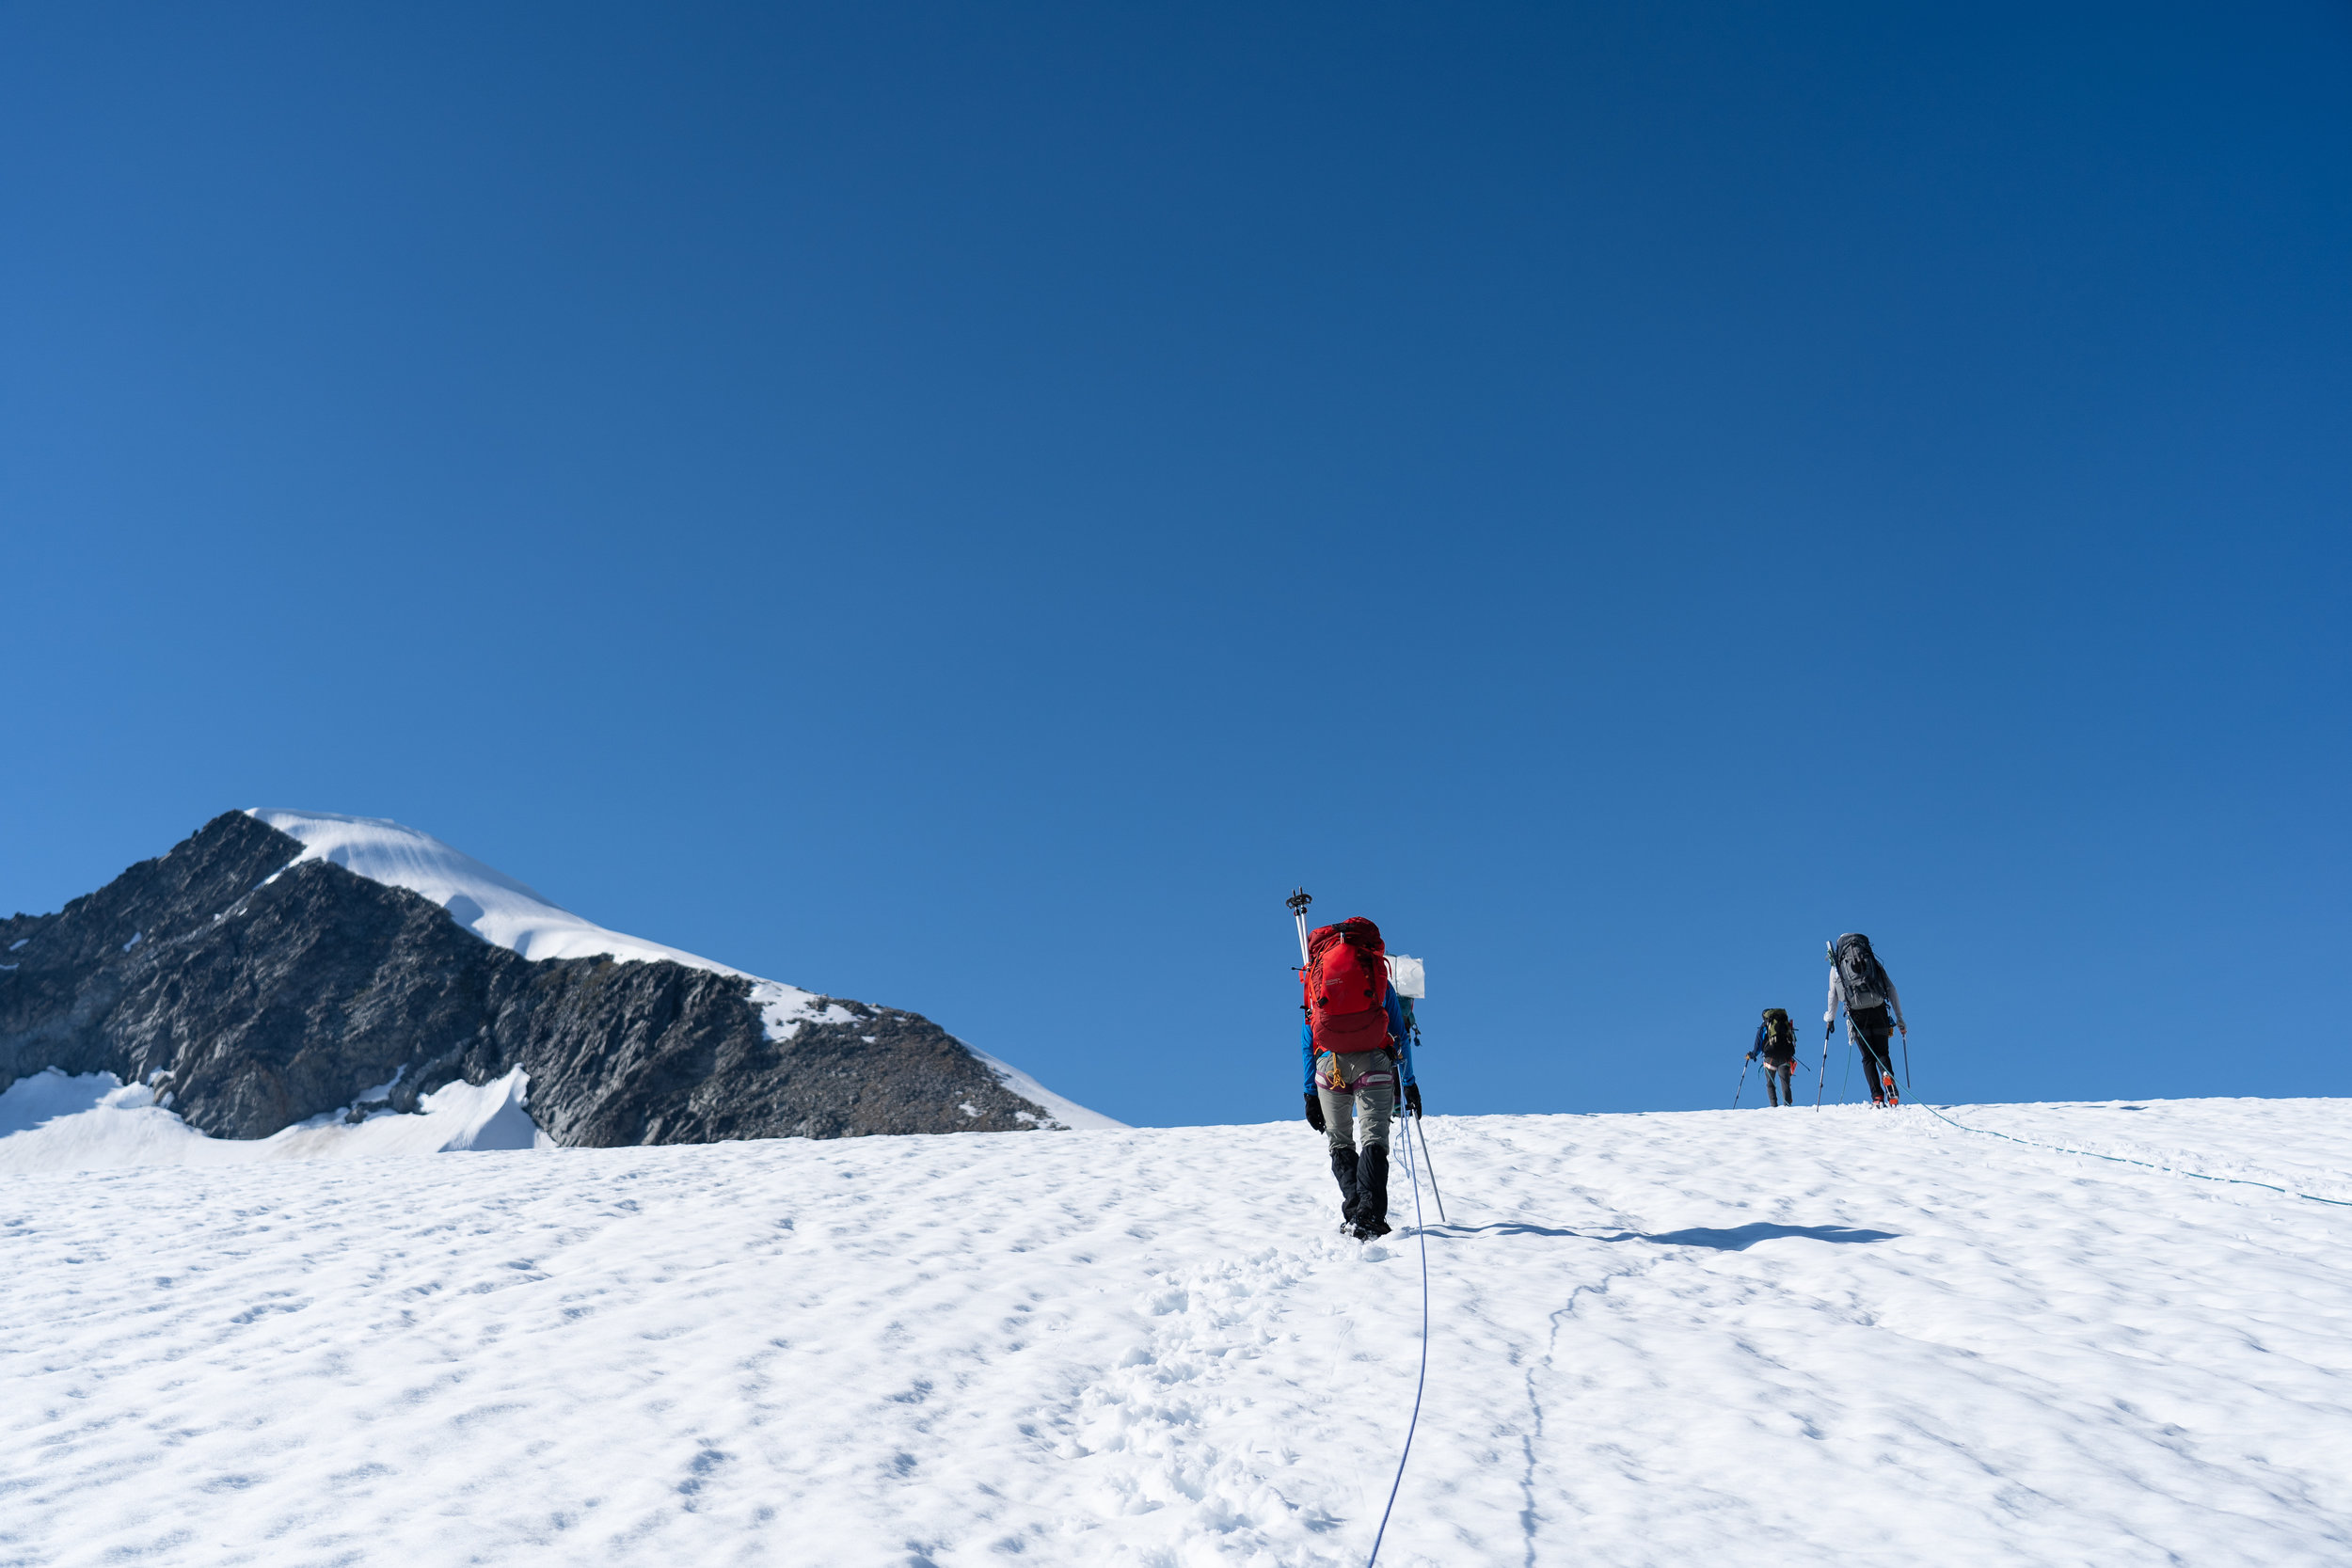 Cresting the hill, the next section of glacier would be flat